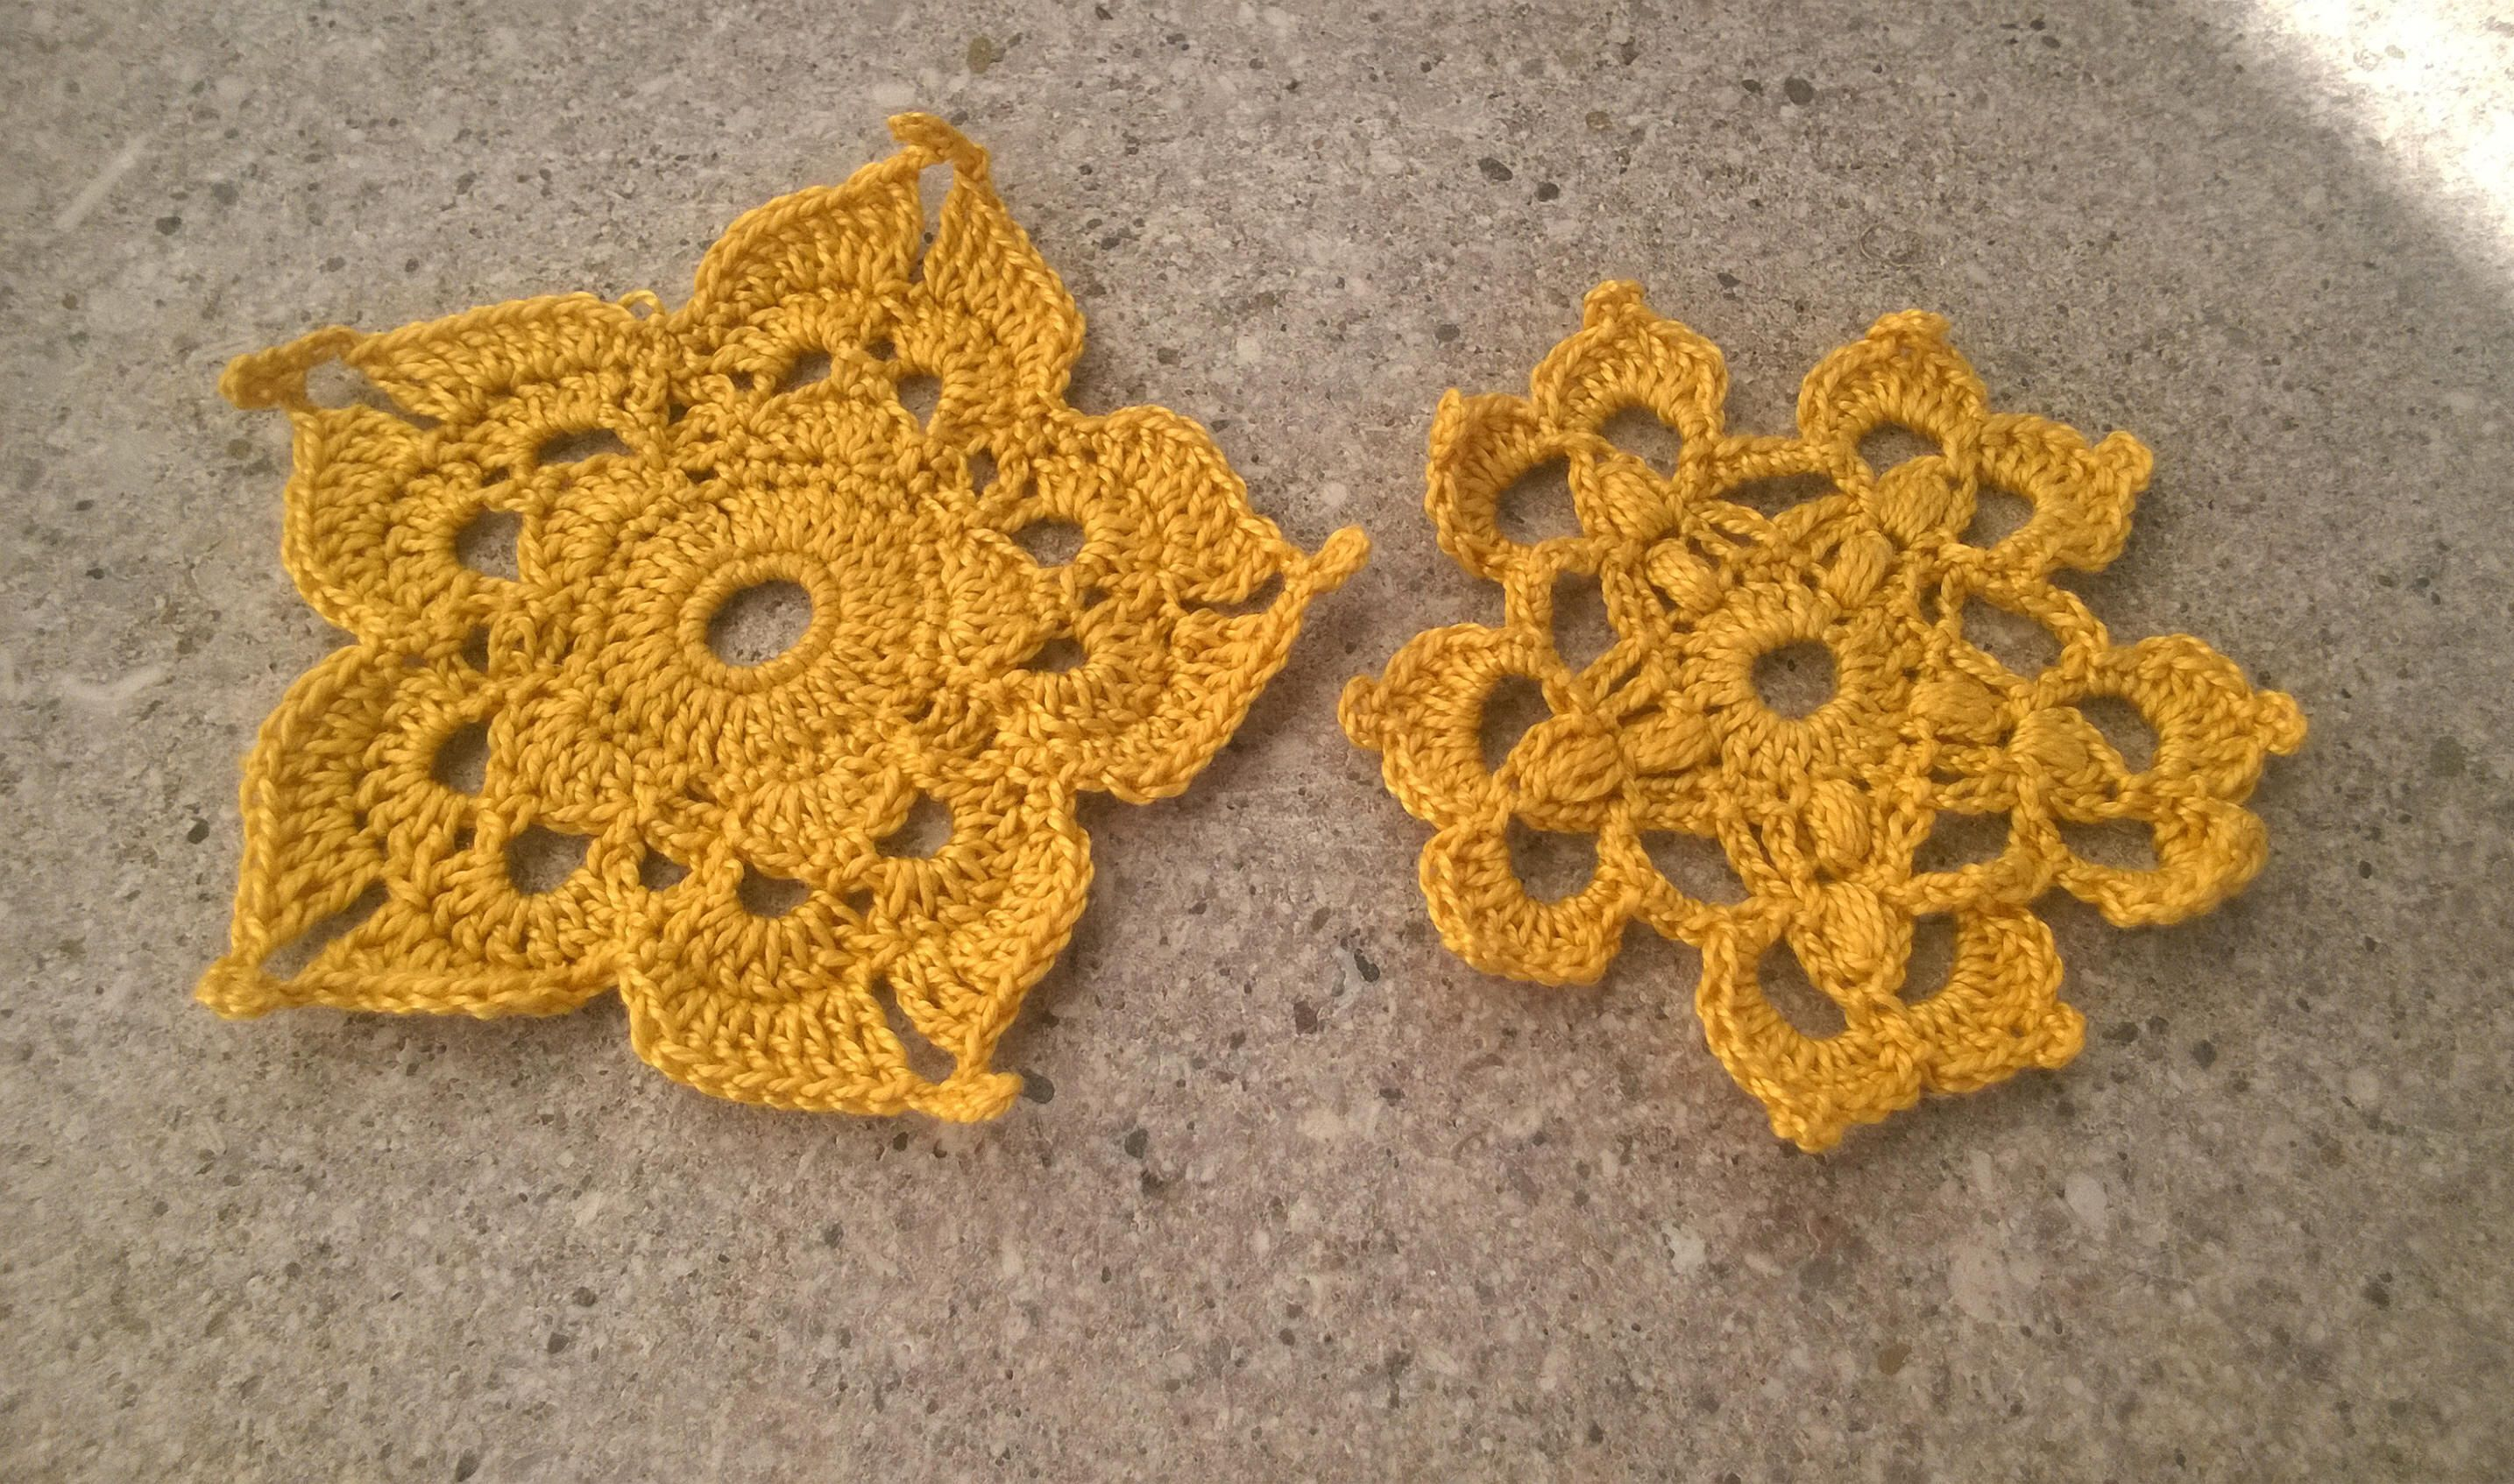 Crochet flower motif pattern, crochet flower doily, crochet lace doily, crochet applique, small mini crochet doilies, irish crochet motifs #irishcrochetflowers